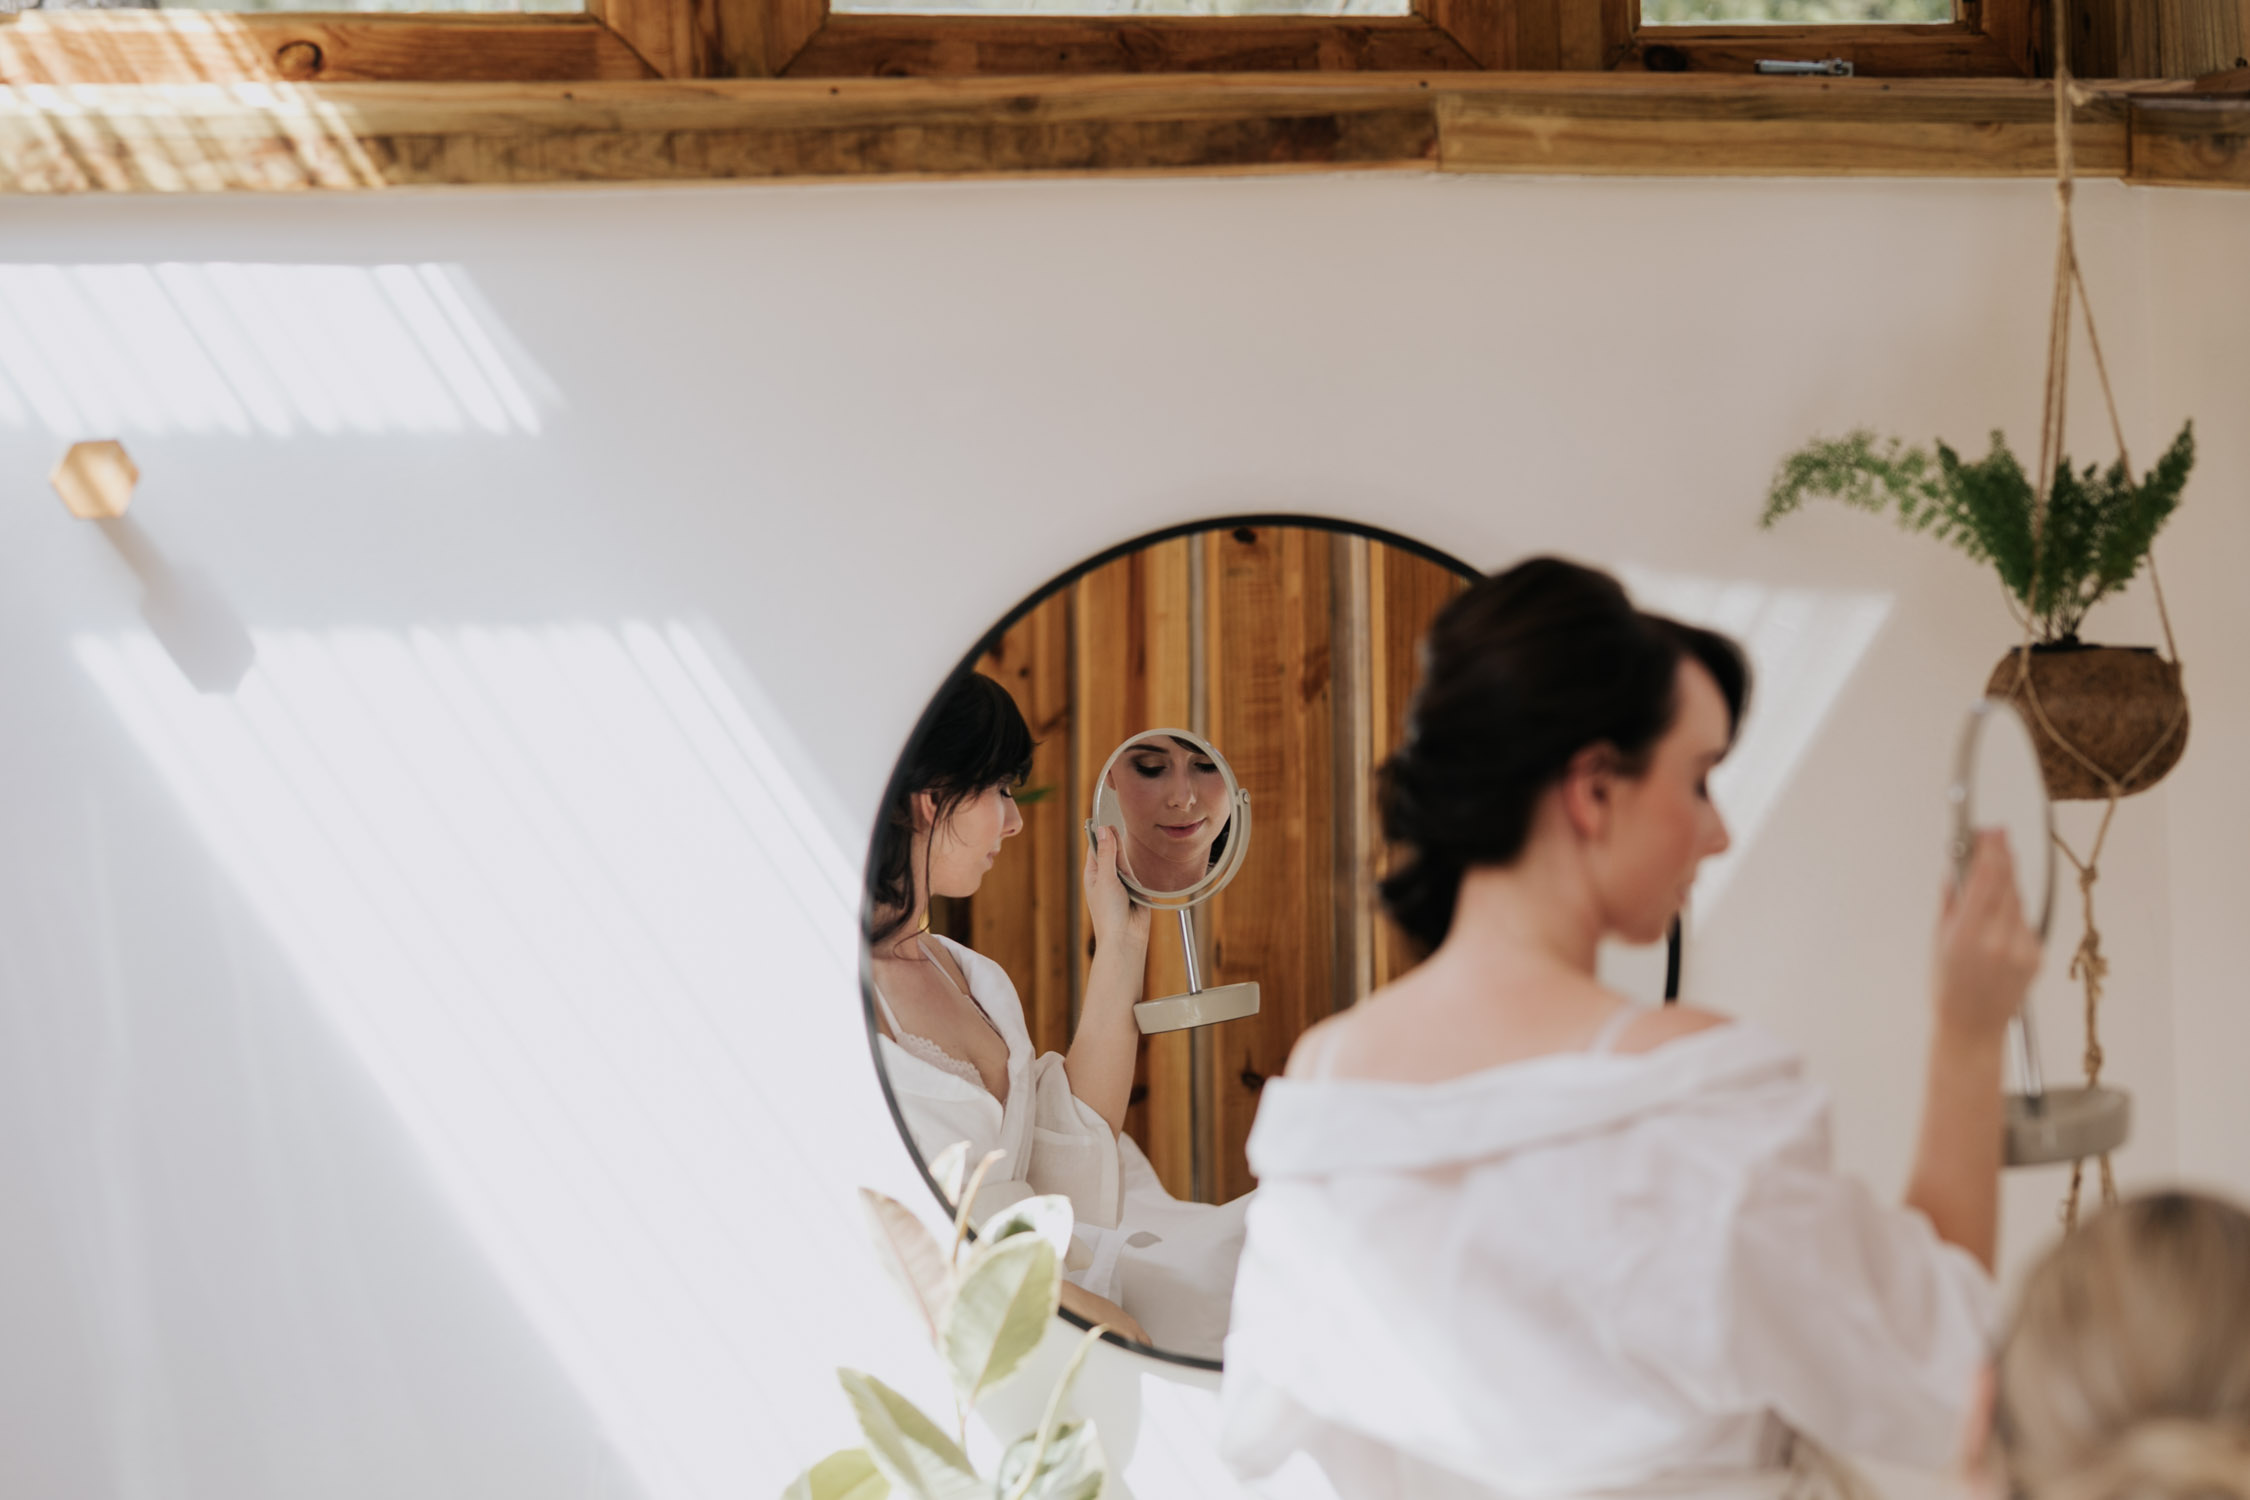 Creative photo of bride's reflection as she looks in the mirror at her bridal hair and makeup at The Greenhouse Cafe Wedding Venue